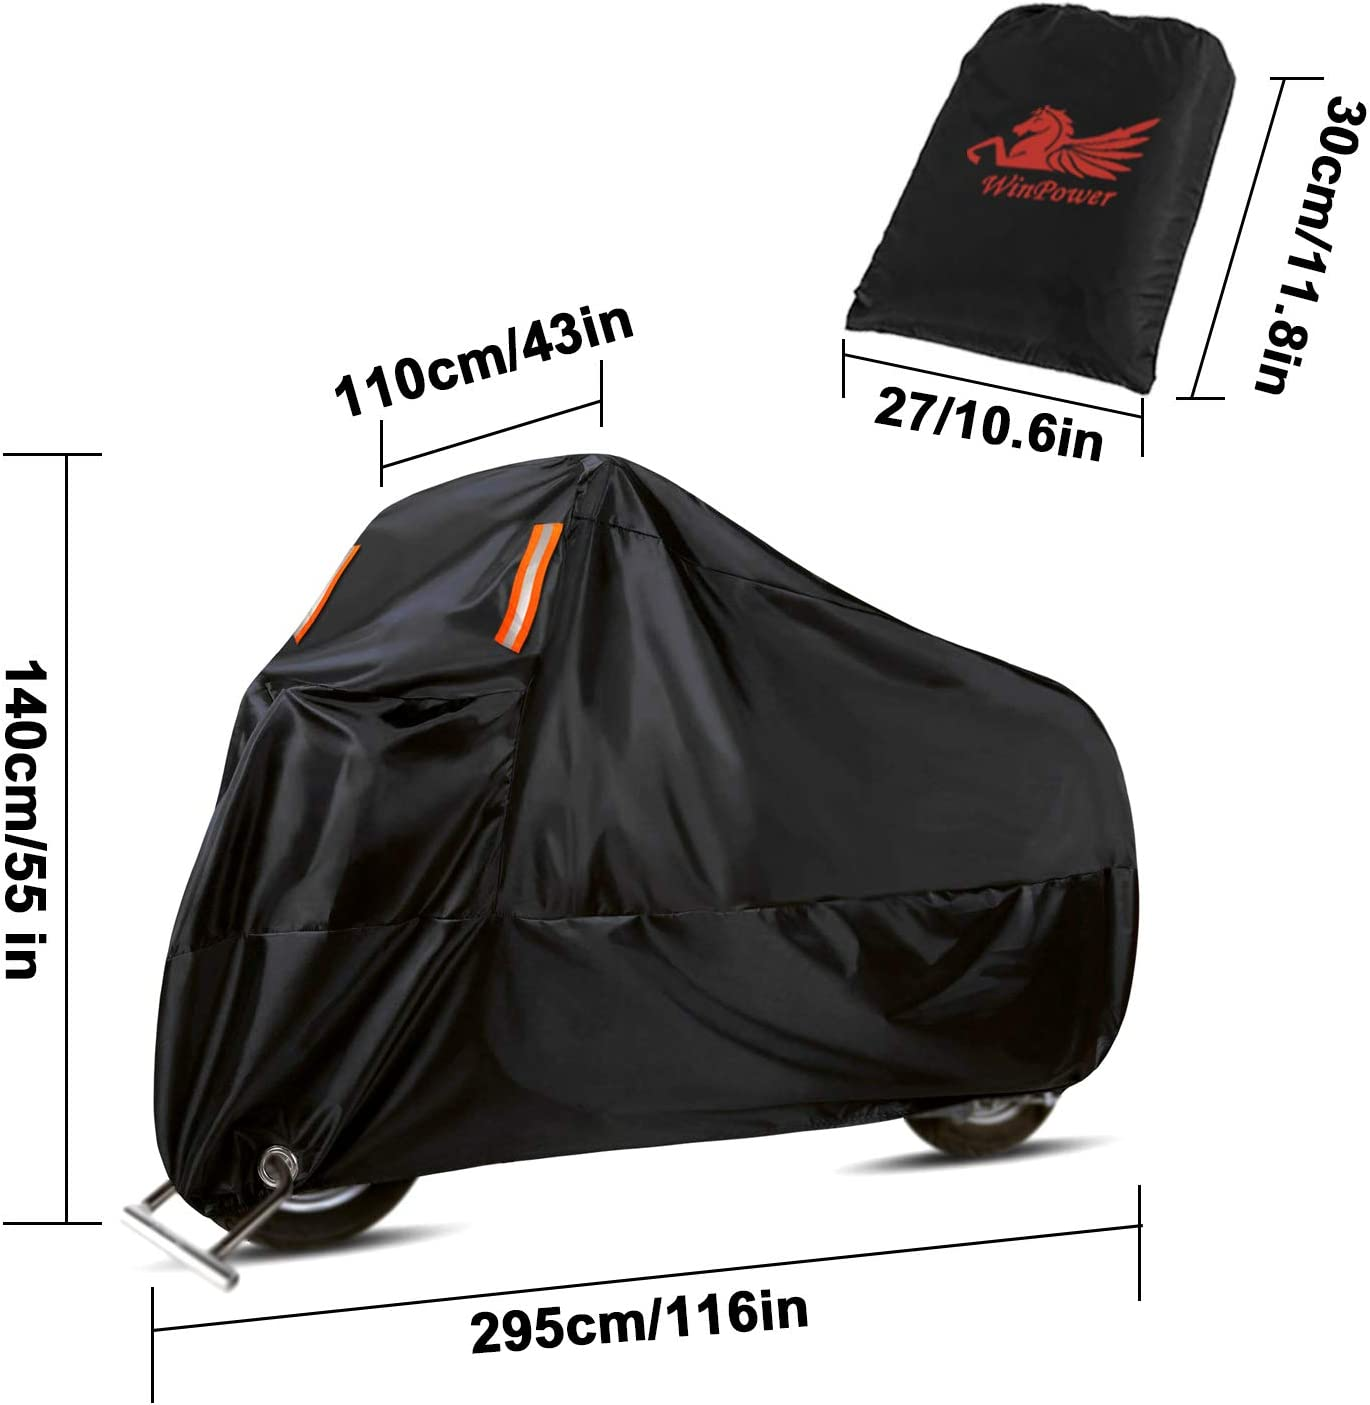 Suzuki Honda WinPower Outdoor Waterproof Motorcycle Cover Winter Snow Cover for Harley Davidson 104 x 41 x 49 inch XXXL Yamaha and All Motors Kawasaki